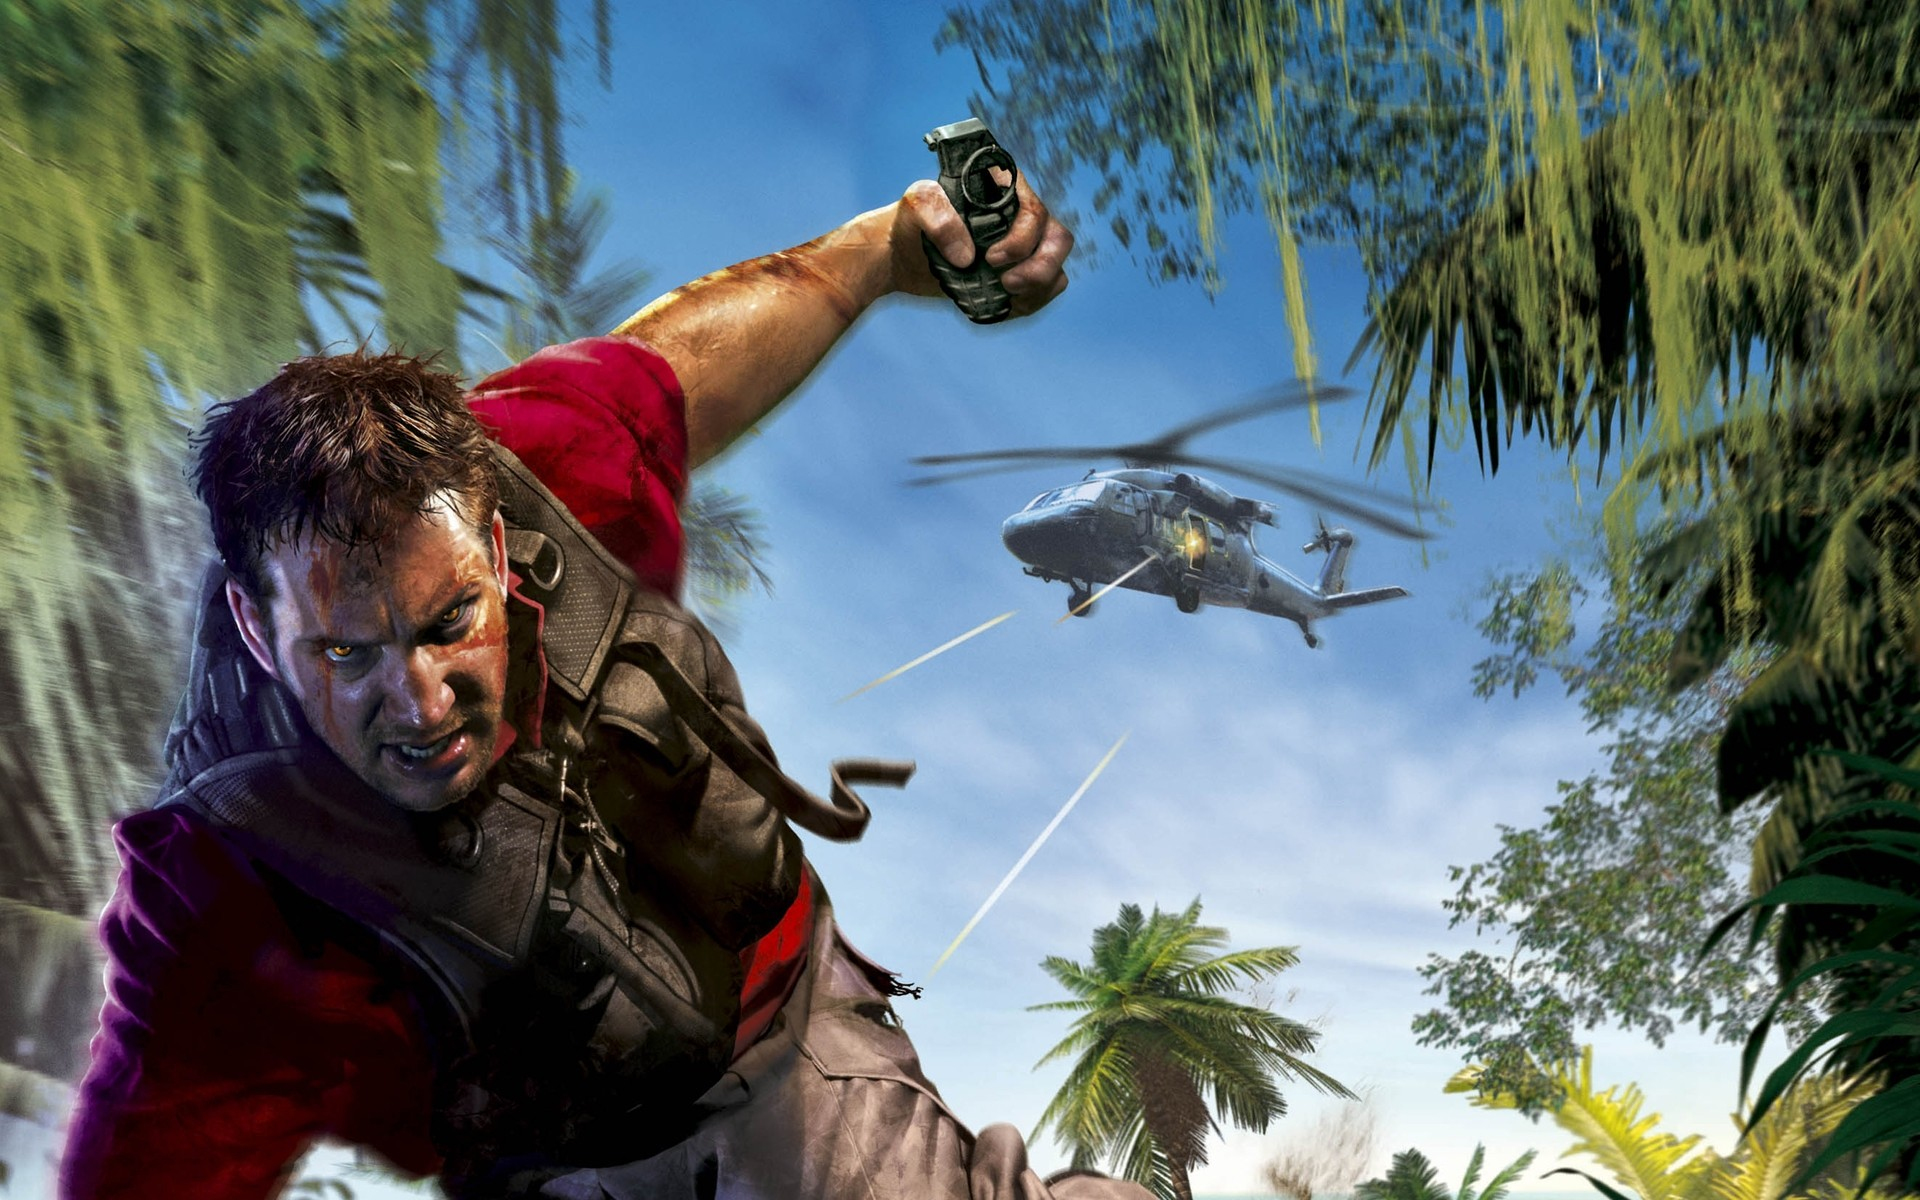 1920x1200  Wallpaper far cry, angry, helicopter, grenade, look, jack carver